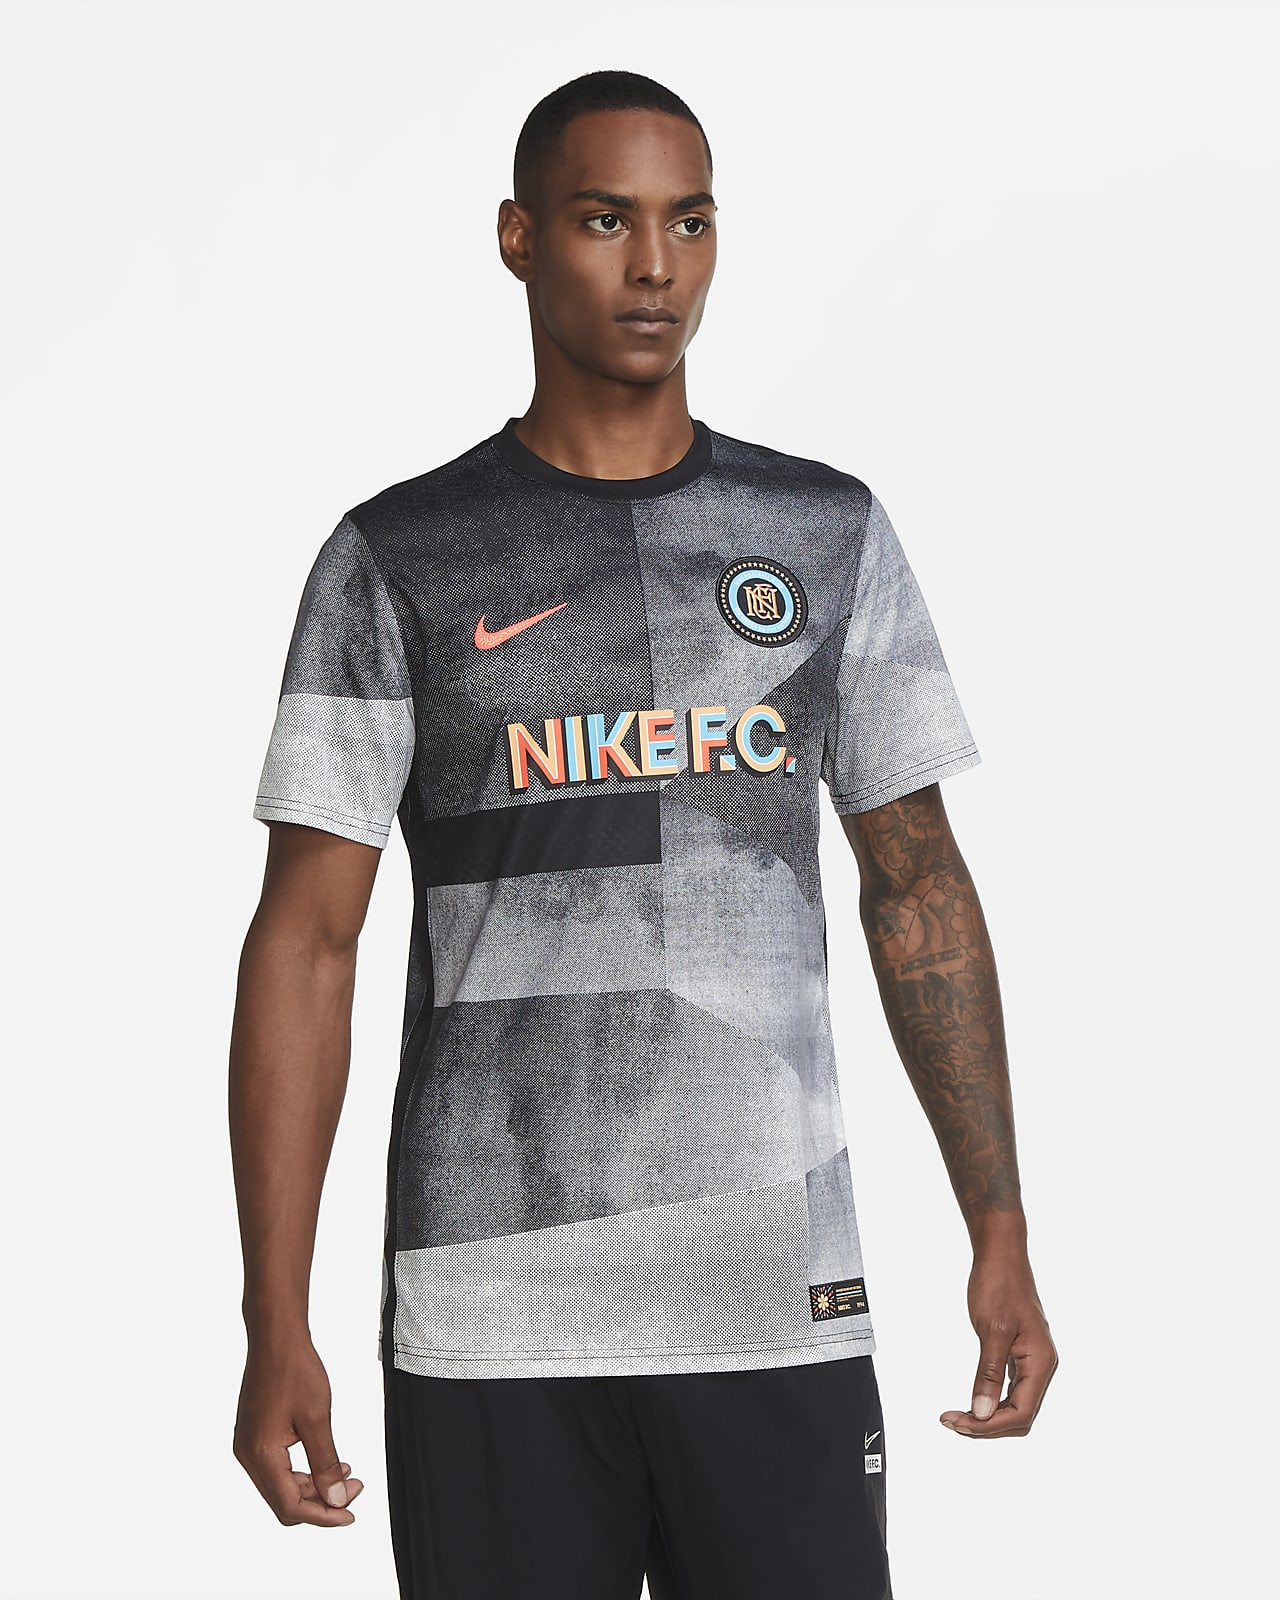 Nike F.C. South Mexico City Men's Soccer Jersey